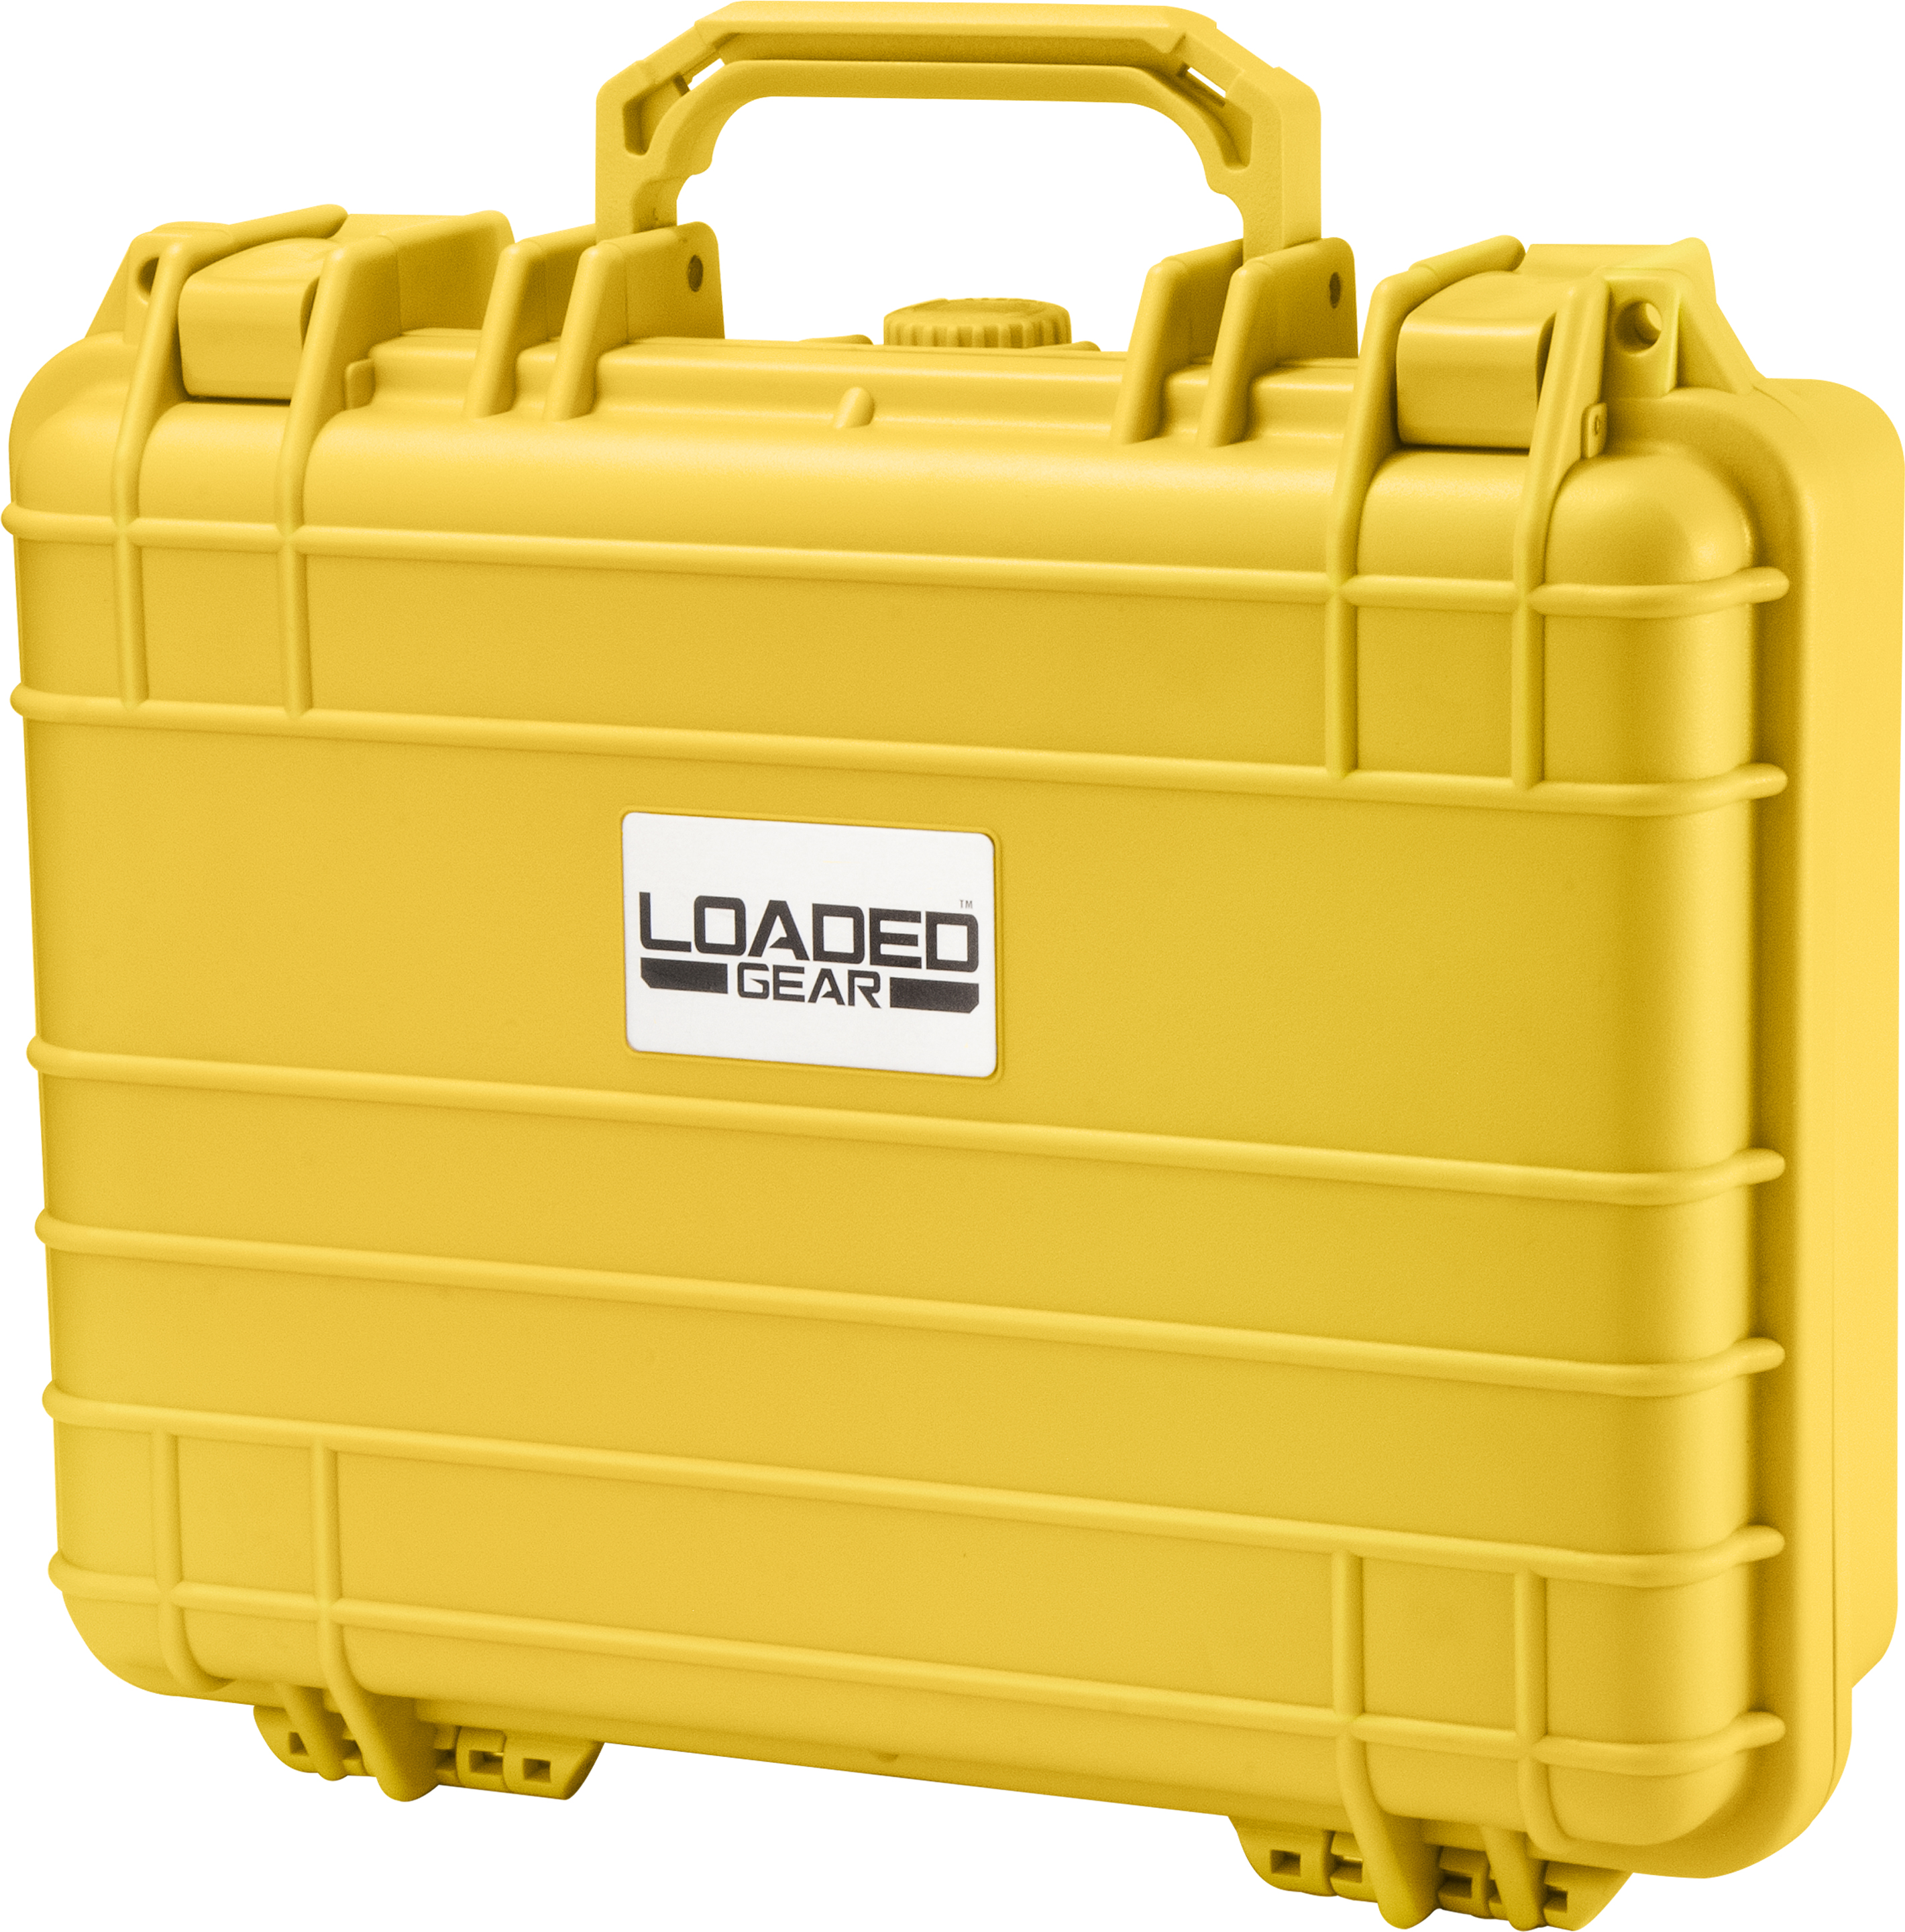 HD-200 WT Protective Hard Case w/ Foam, Yellow